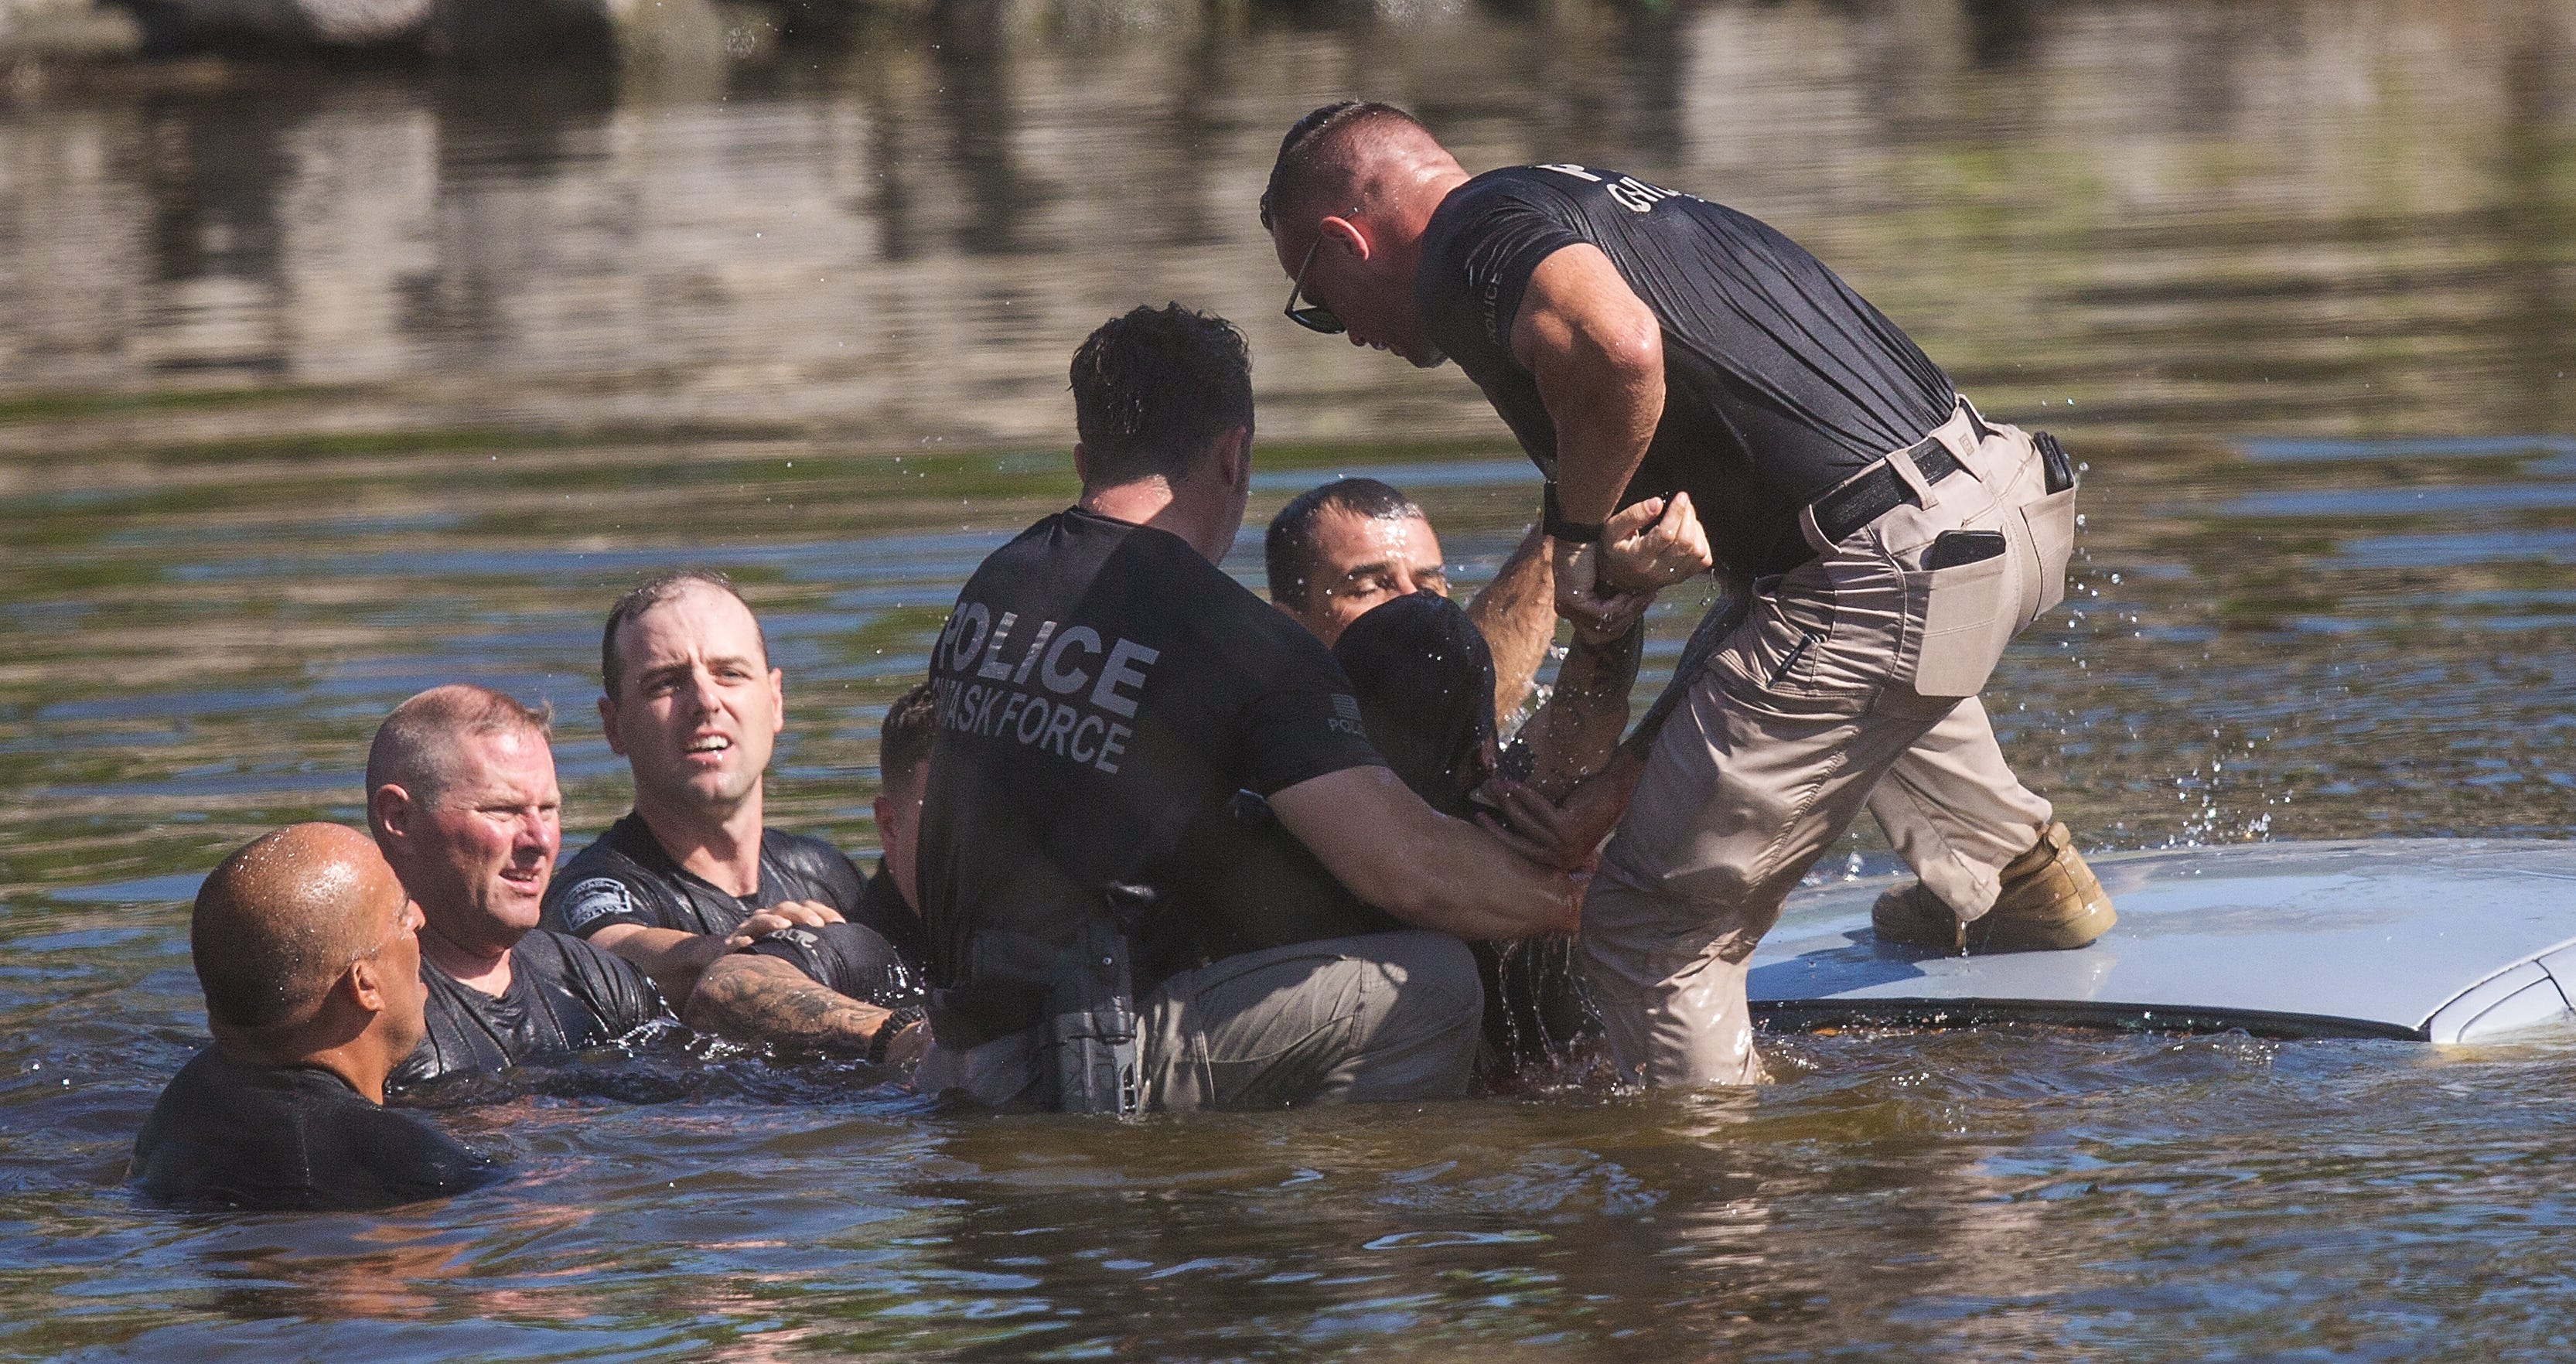 Suspect in officer-involved shooting rescued by police from retention pond in Fort Myers 2